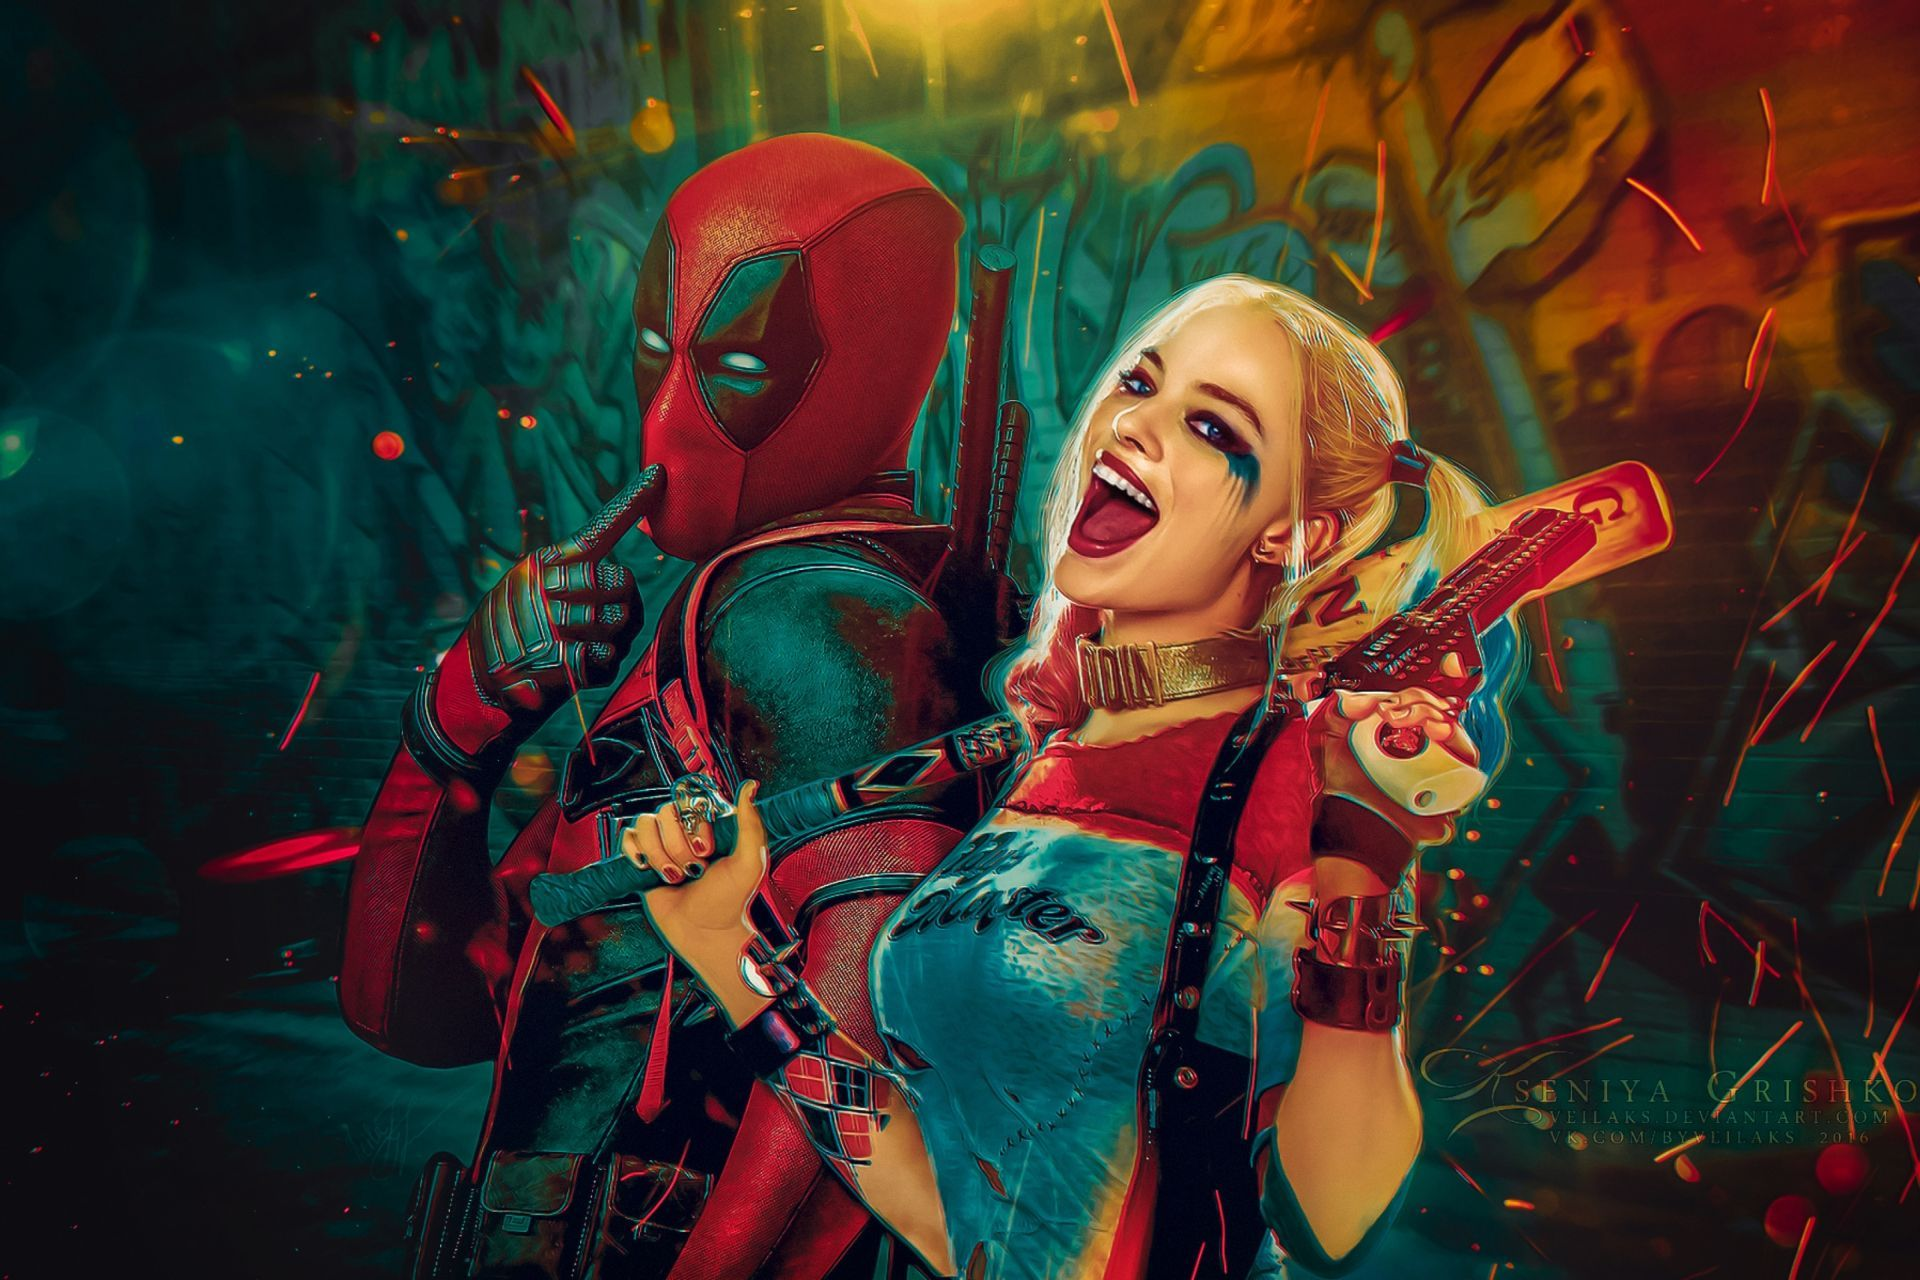 26 Suicide Squad Harley Quinn Wallpapers